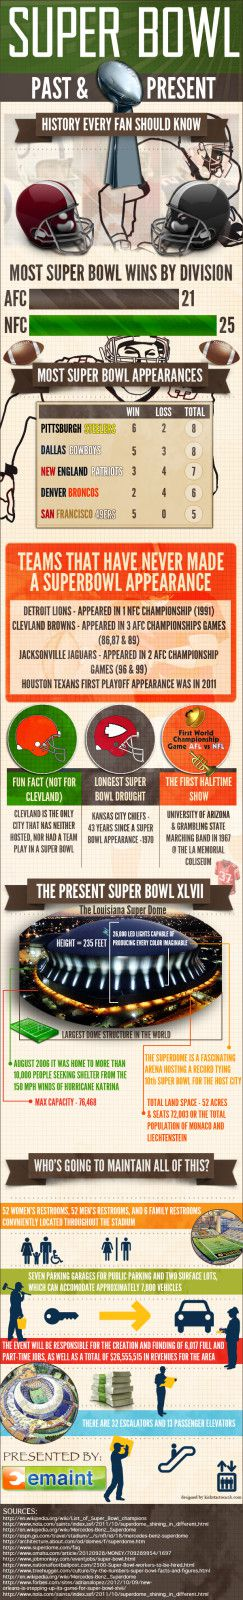 super-bowl-past--present_5100289fb7a47.jpg